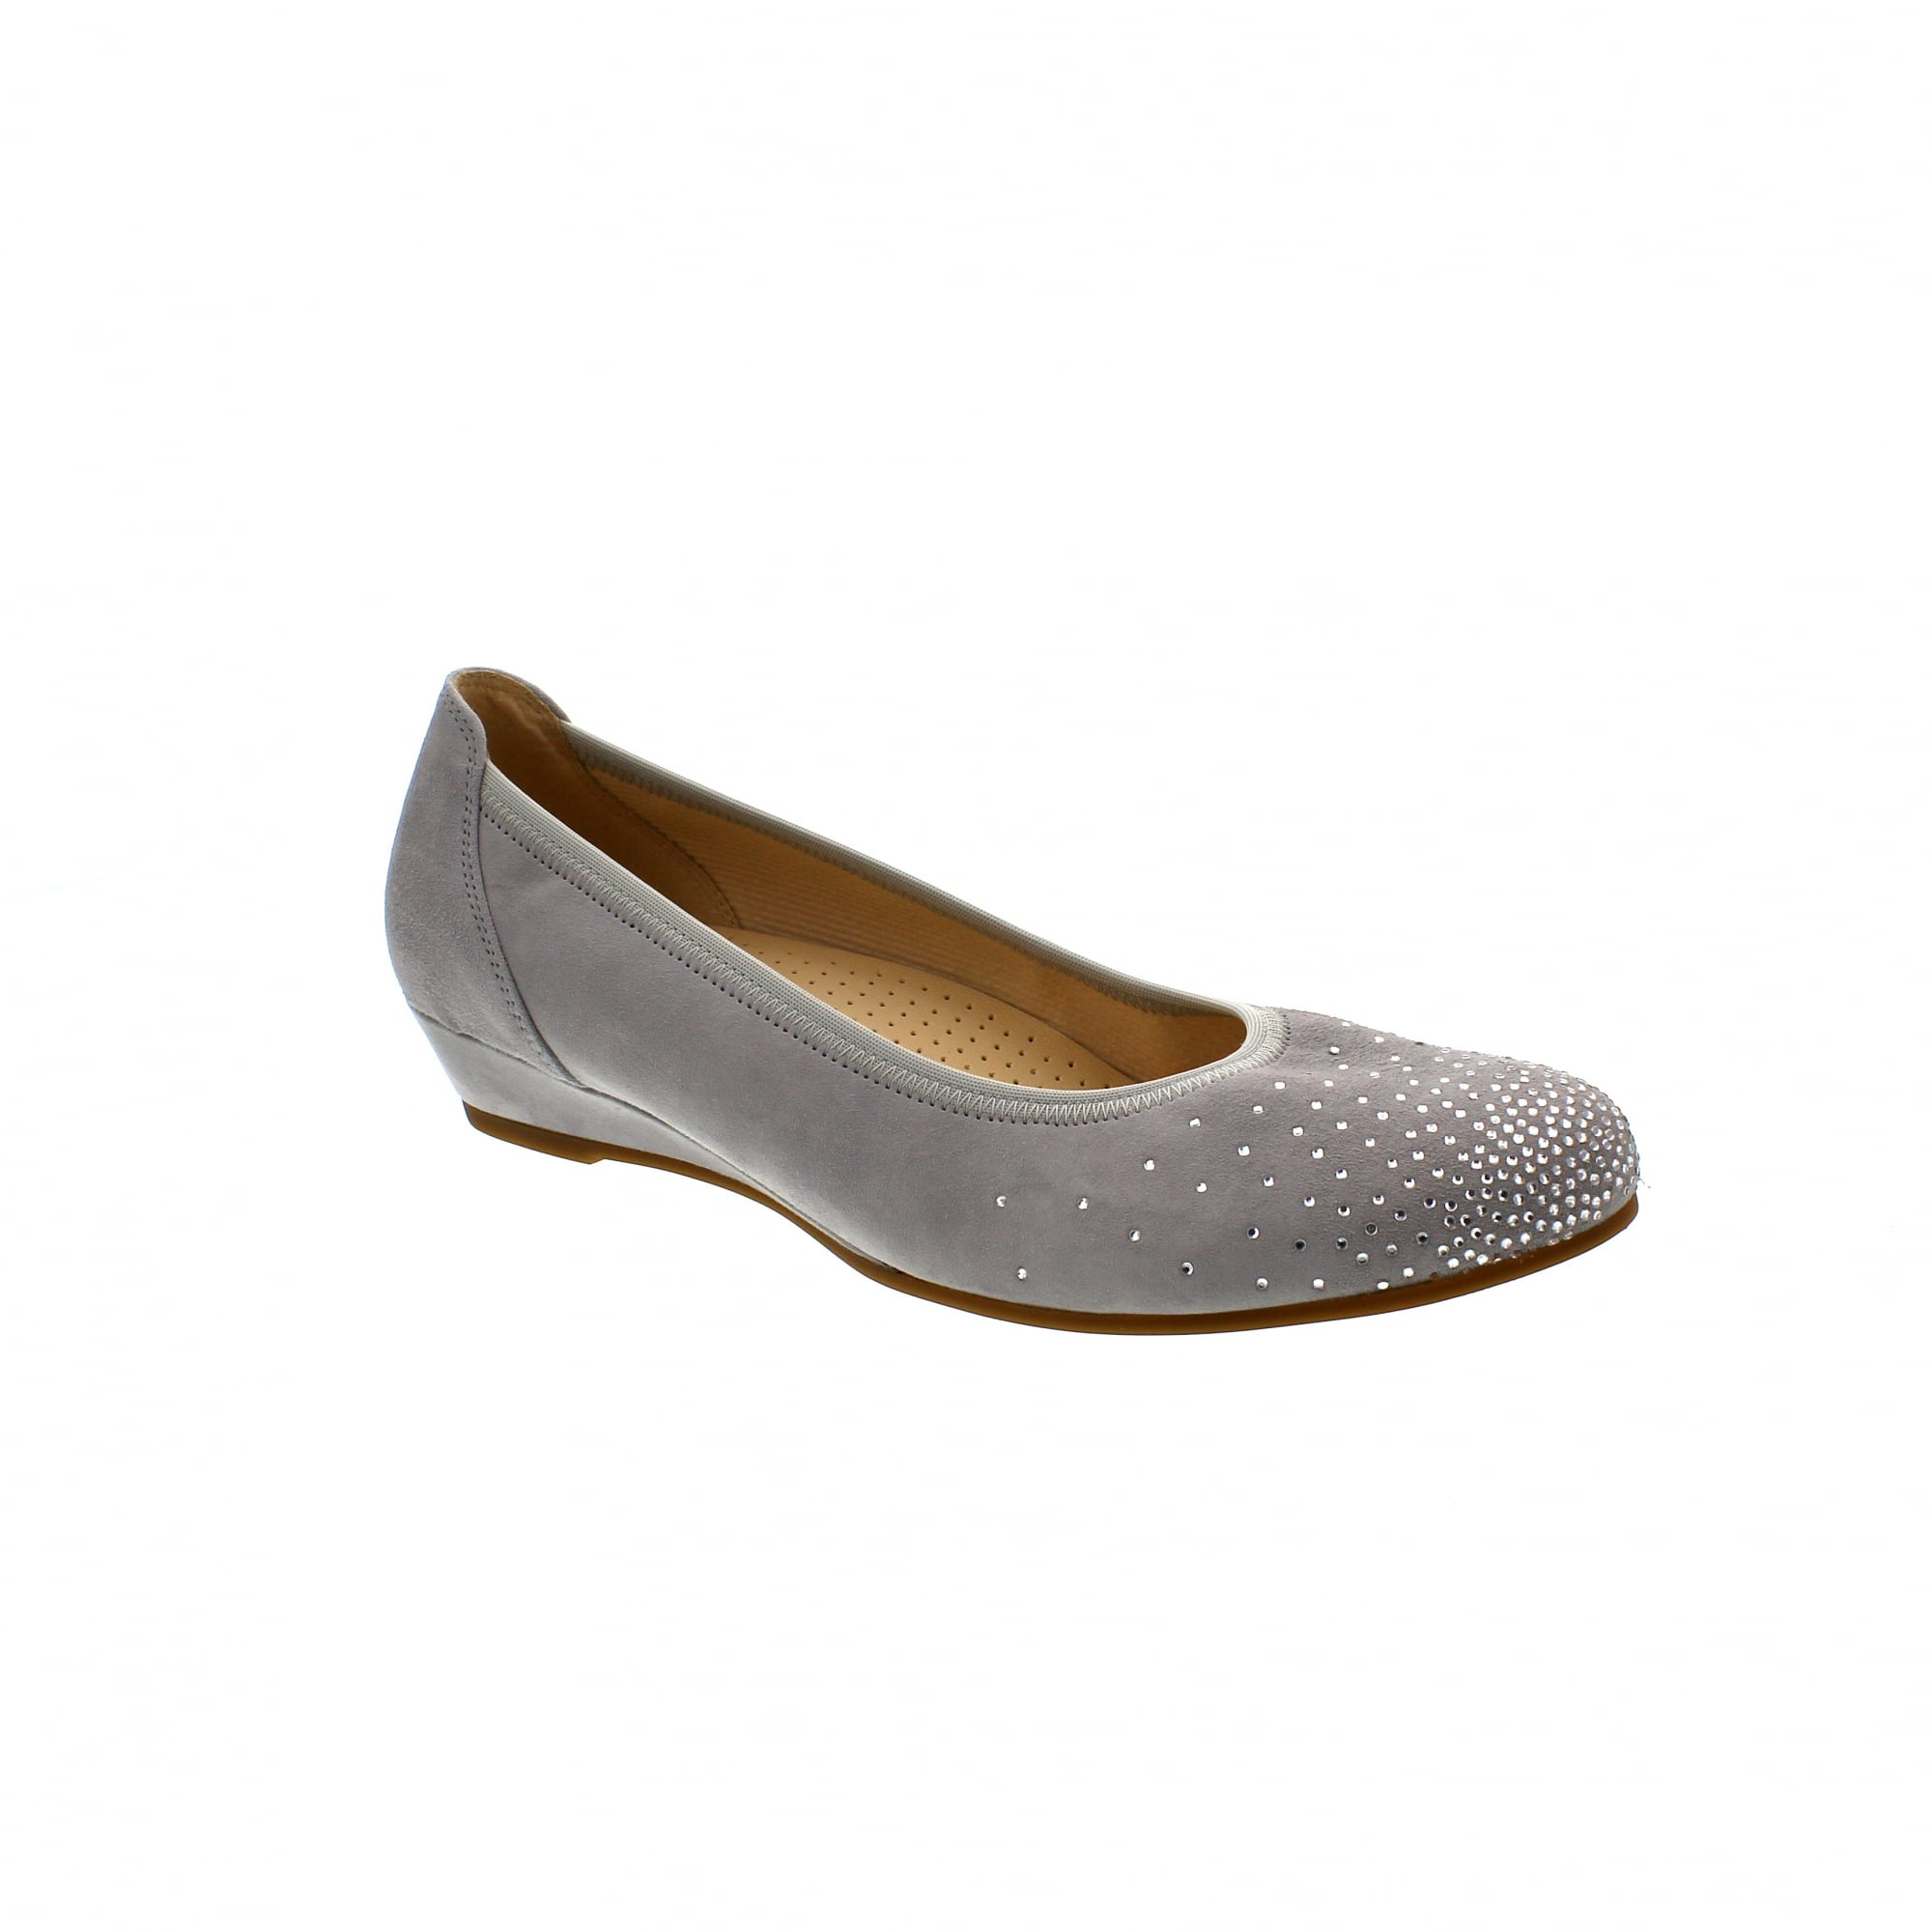 1377547e713c5 Gabor Arya 82-694-40 Grey Suede Womens Wedge Pumps | Rogerson Shoes